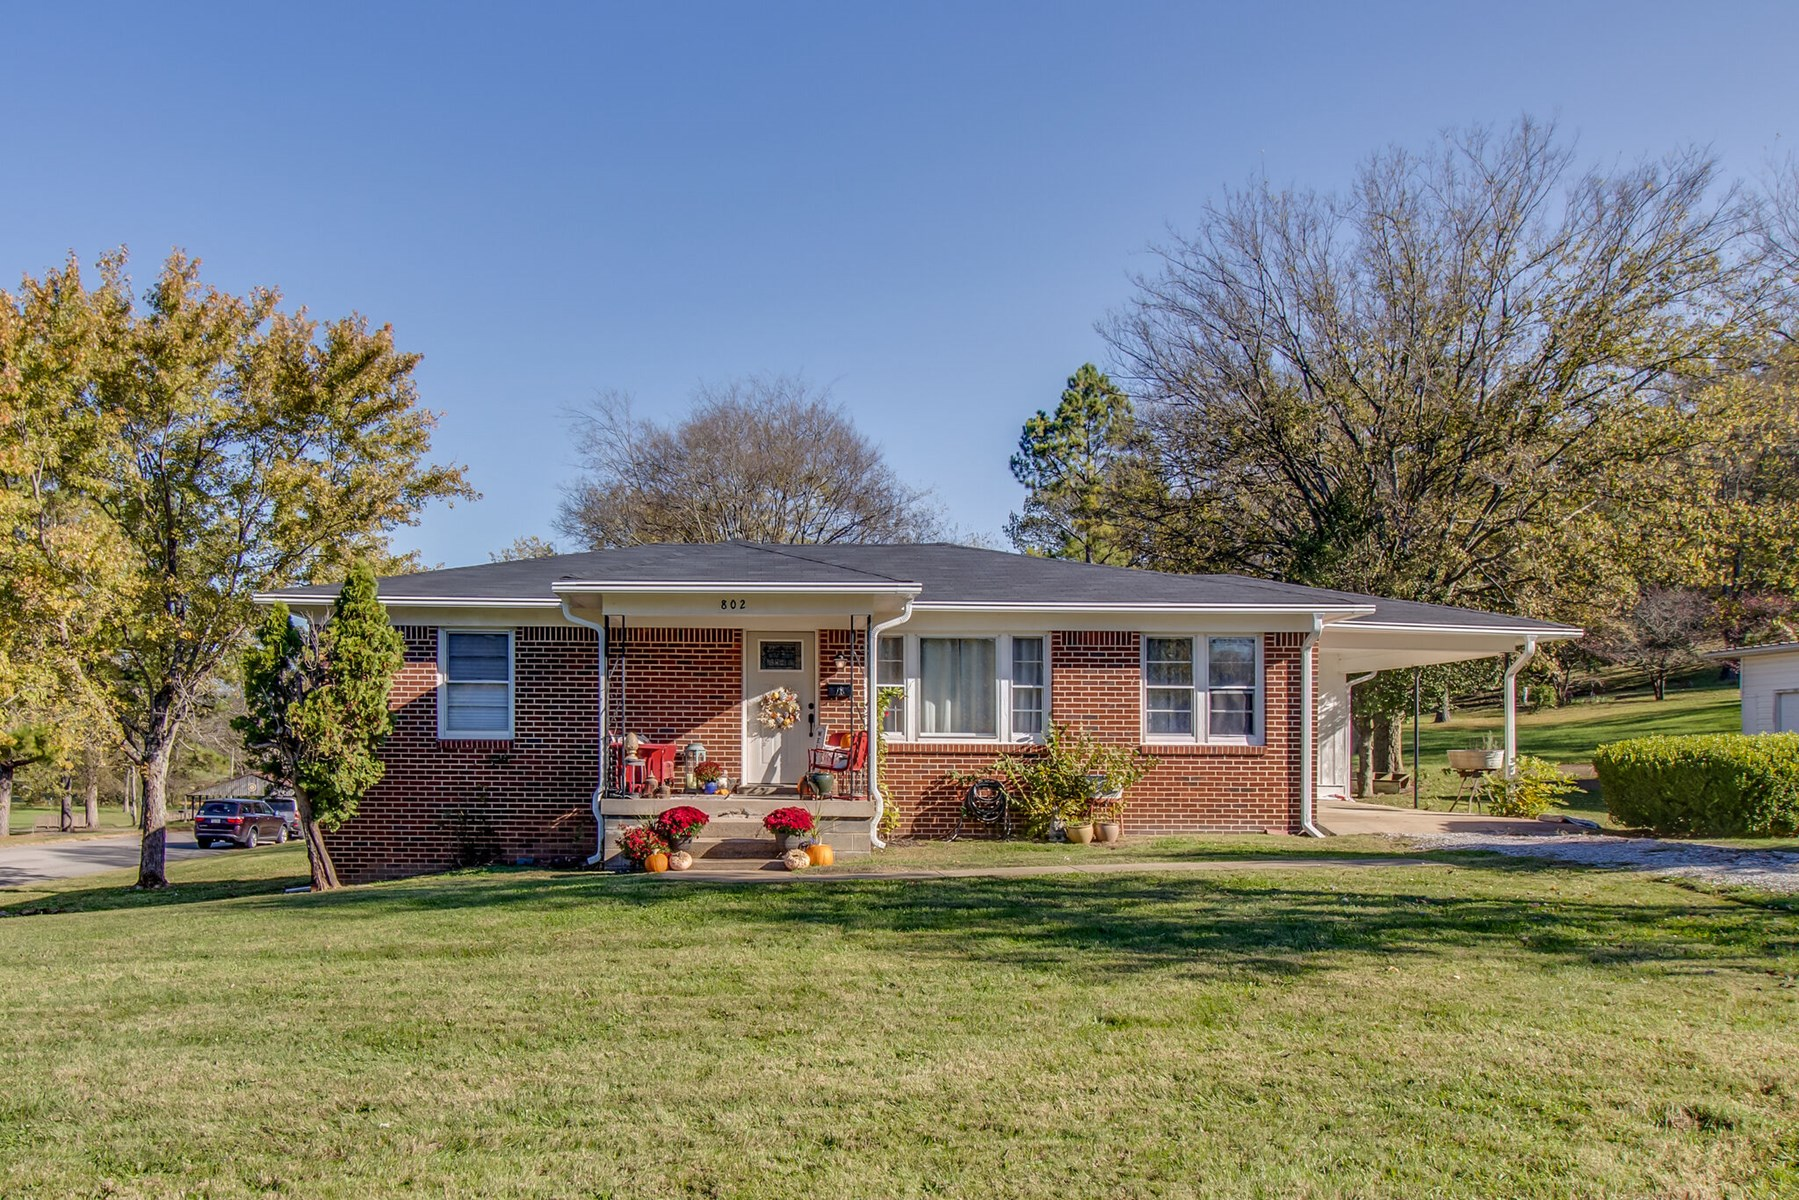 Home in Town for Sale in Mt Pleasant, Tennessee